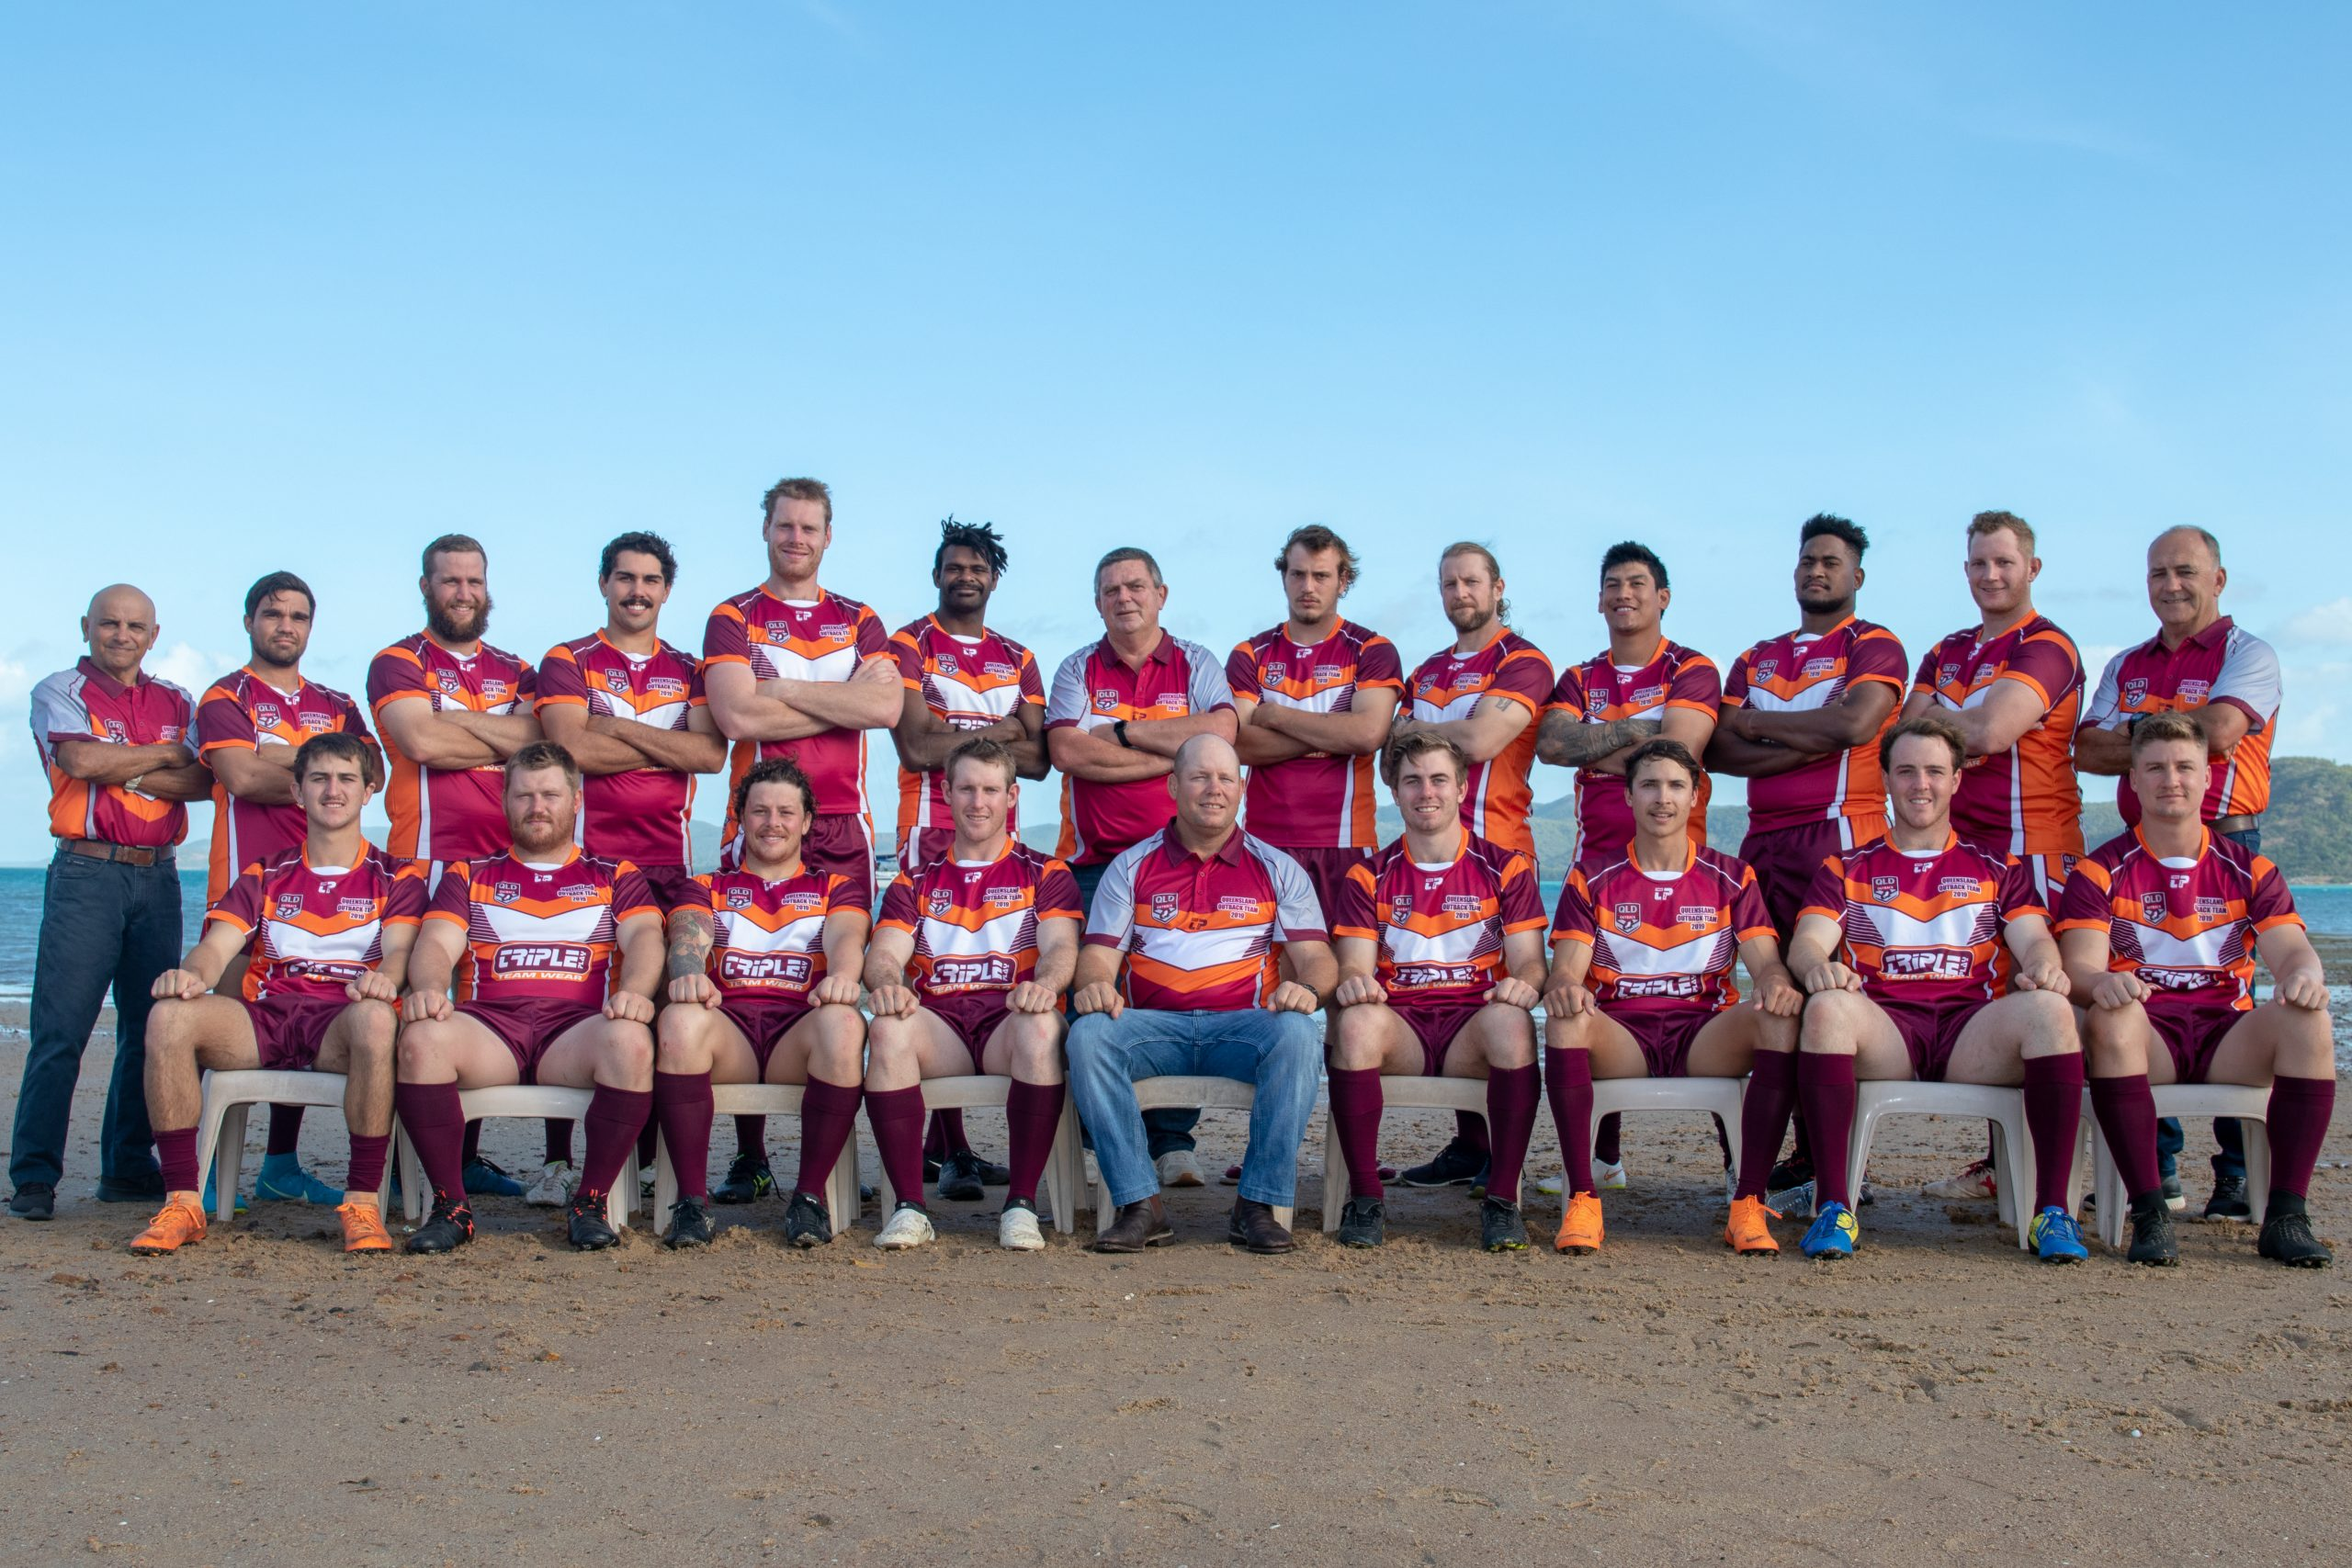 Queensland Men's and Women's Outback teams announced